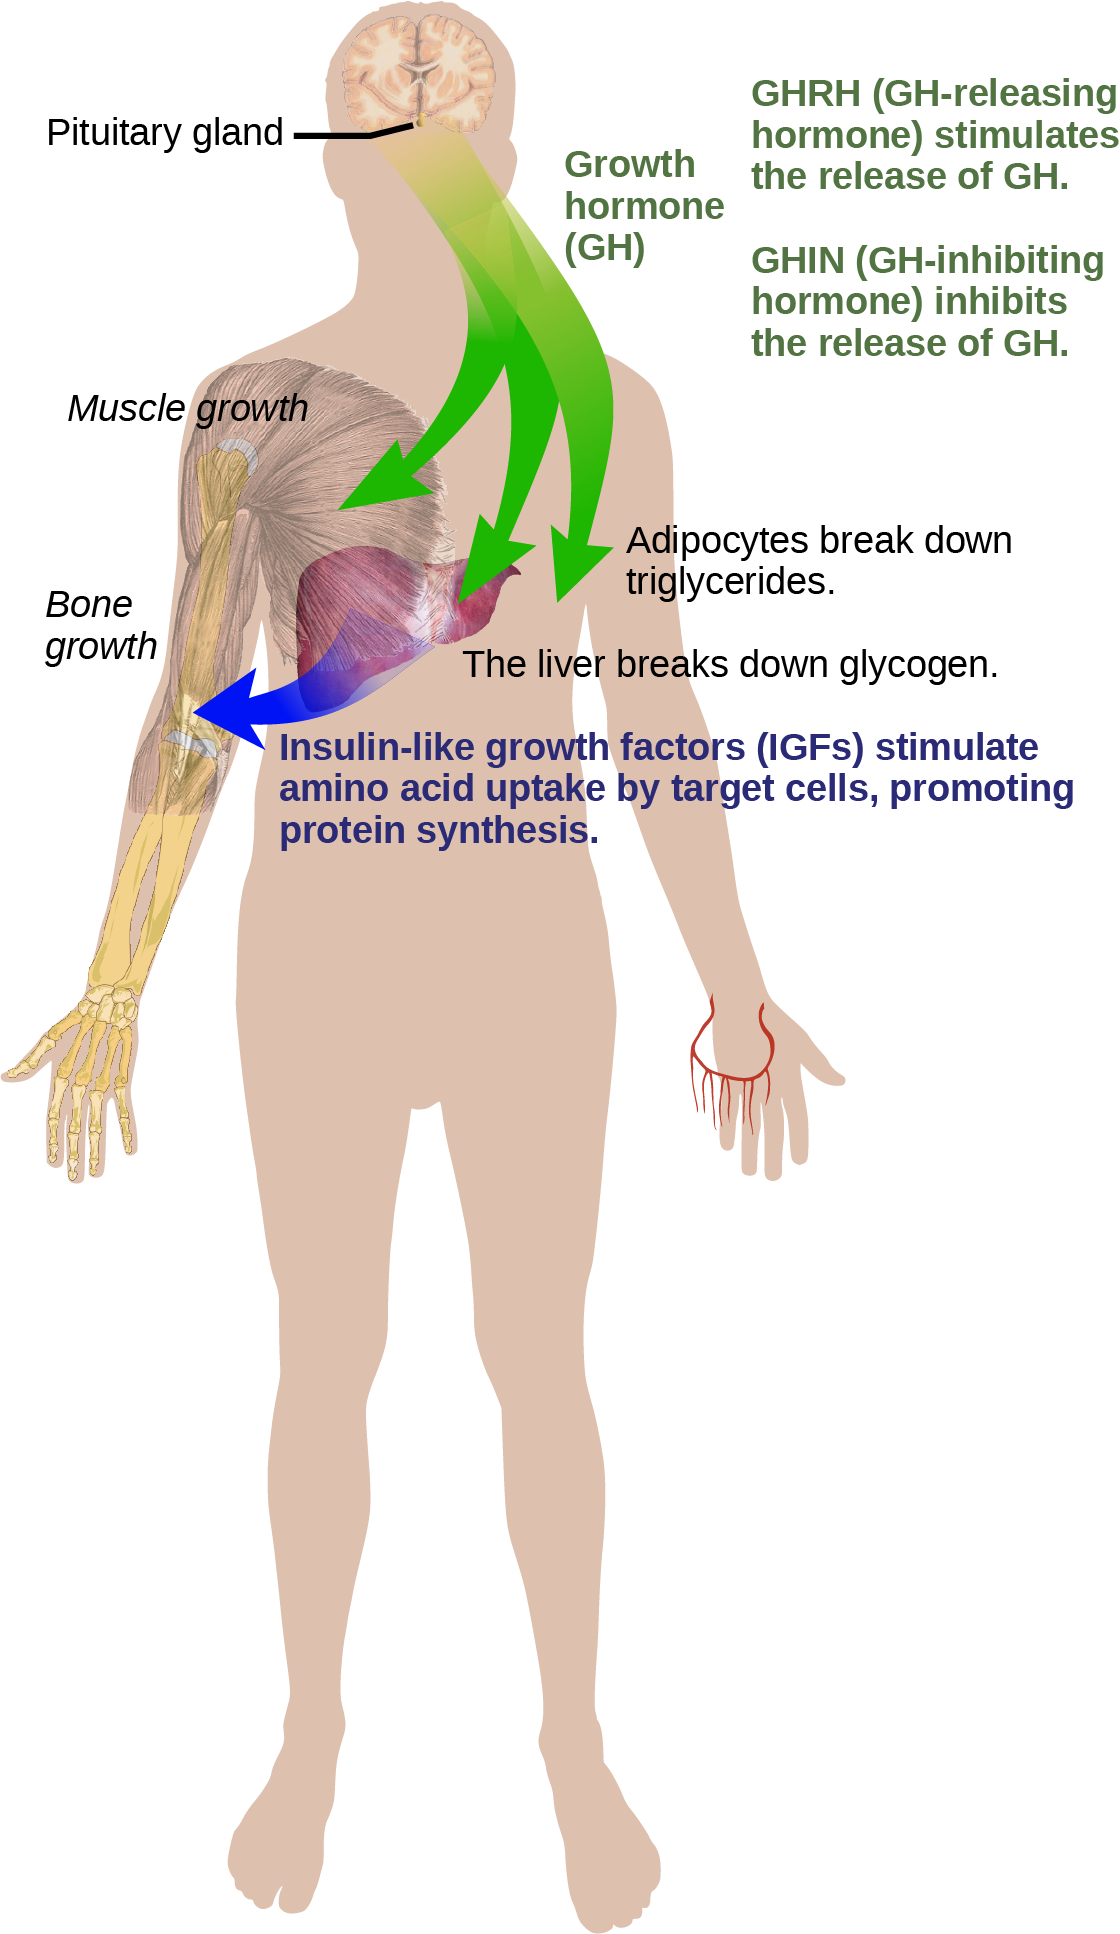 Growth hormone, or G H released from the pituitary gland stimulates bone and muscle growth. It also stimulates fat breakdown by adipocytes and glucagon breakdown by the liver. The liver releases I G Fs, which cause target cells to take up amino acids, promoting protein synthesis. G H releasing hormone stimulates the release of G H, and G H inhibiting hormone, inhibits the release of G H.